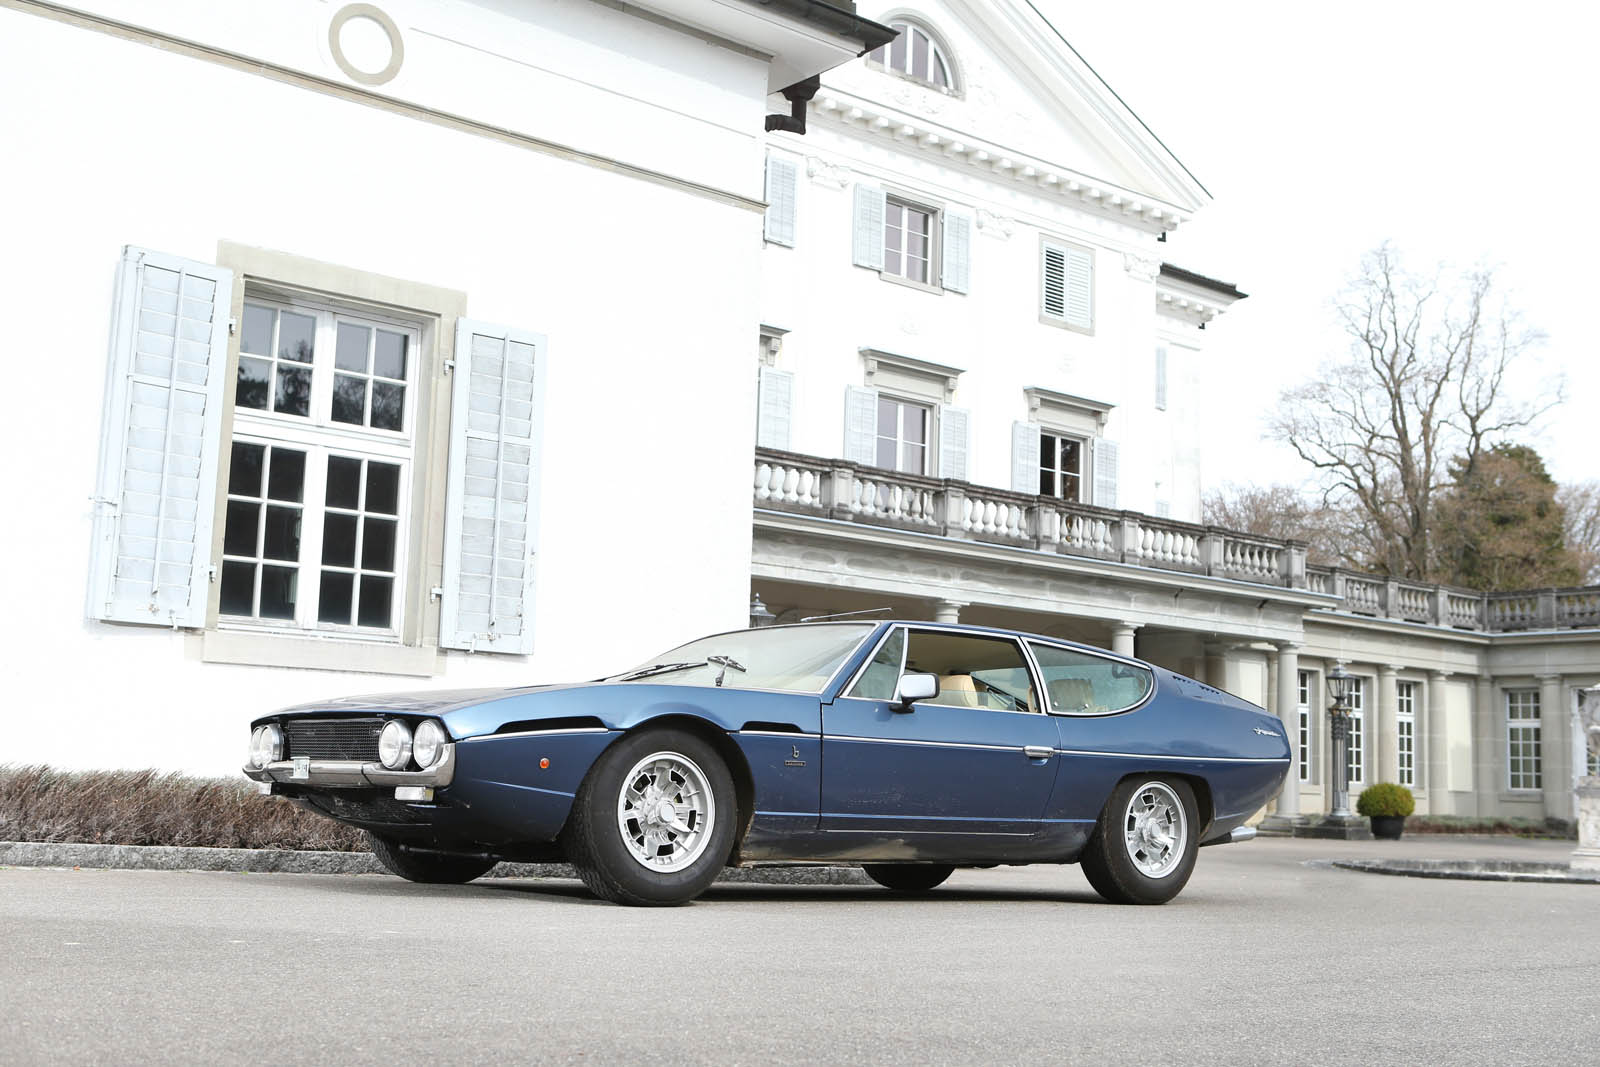 Swiss Castle cars in auctions (8)